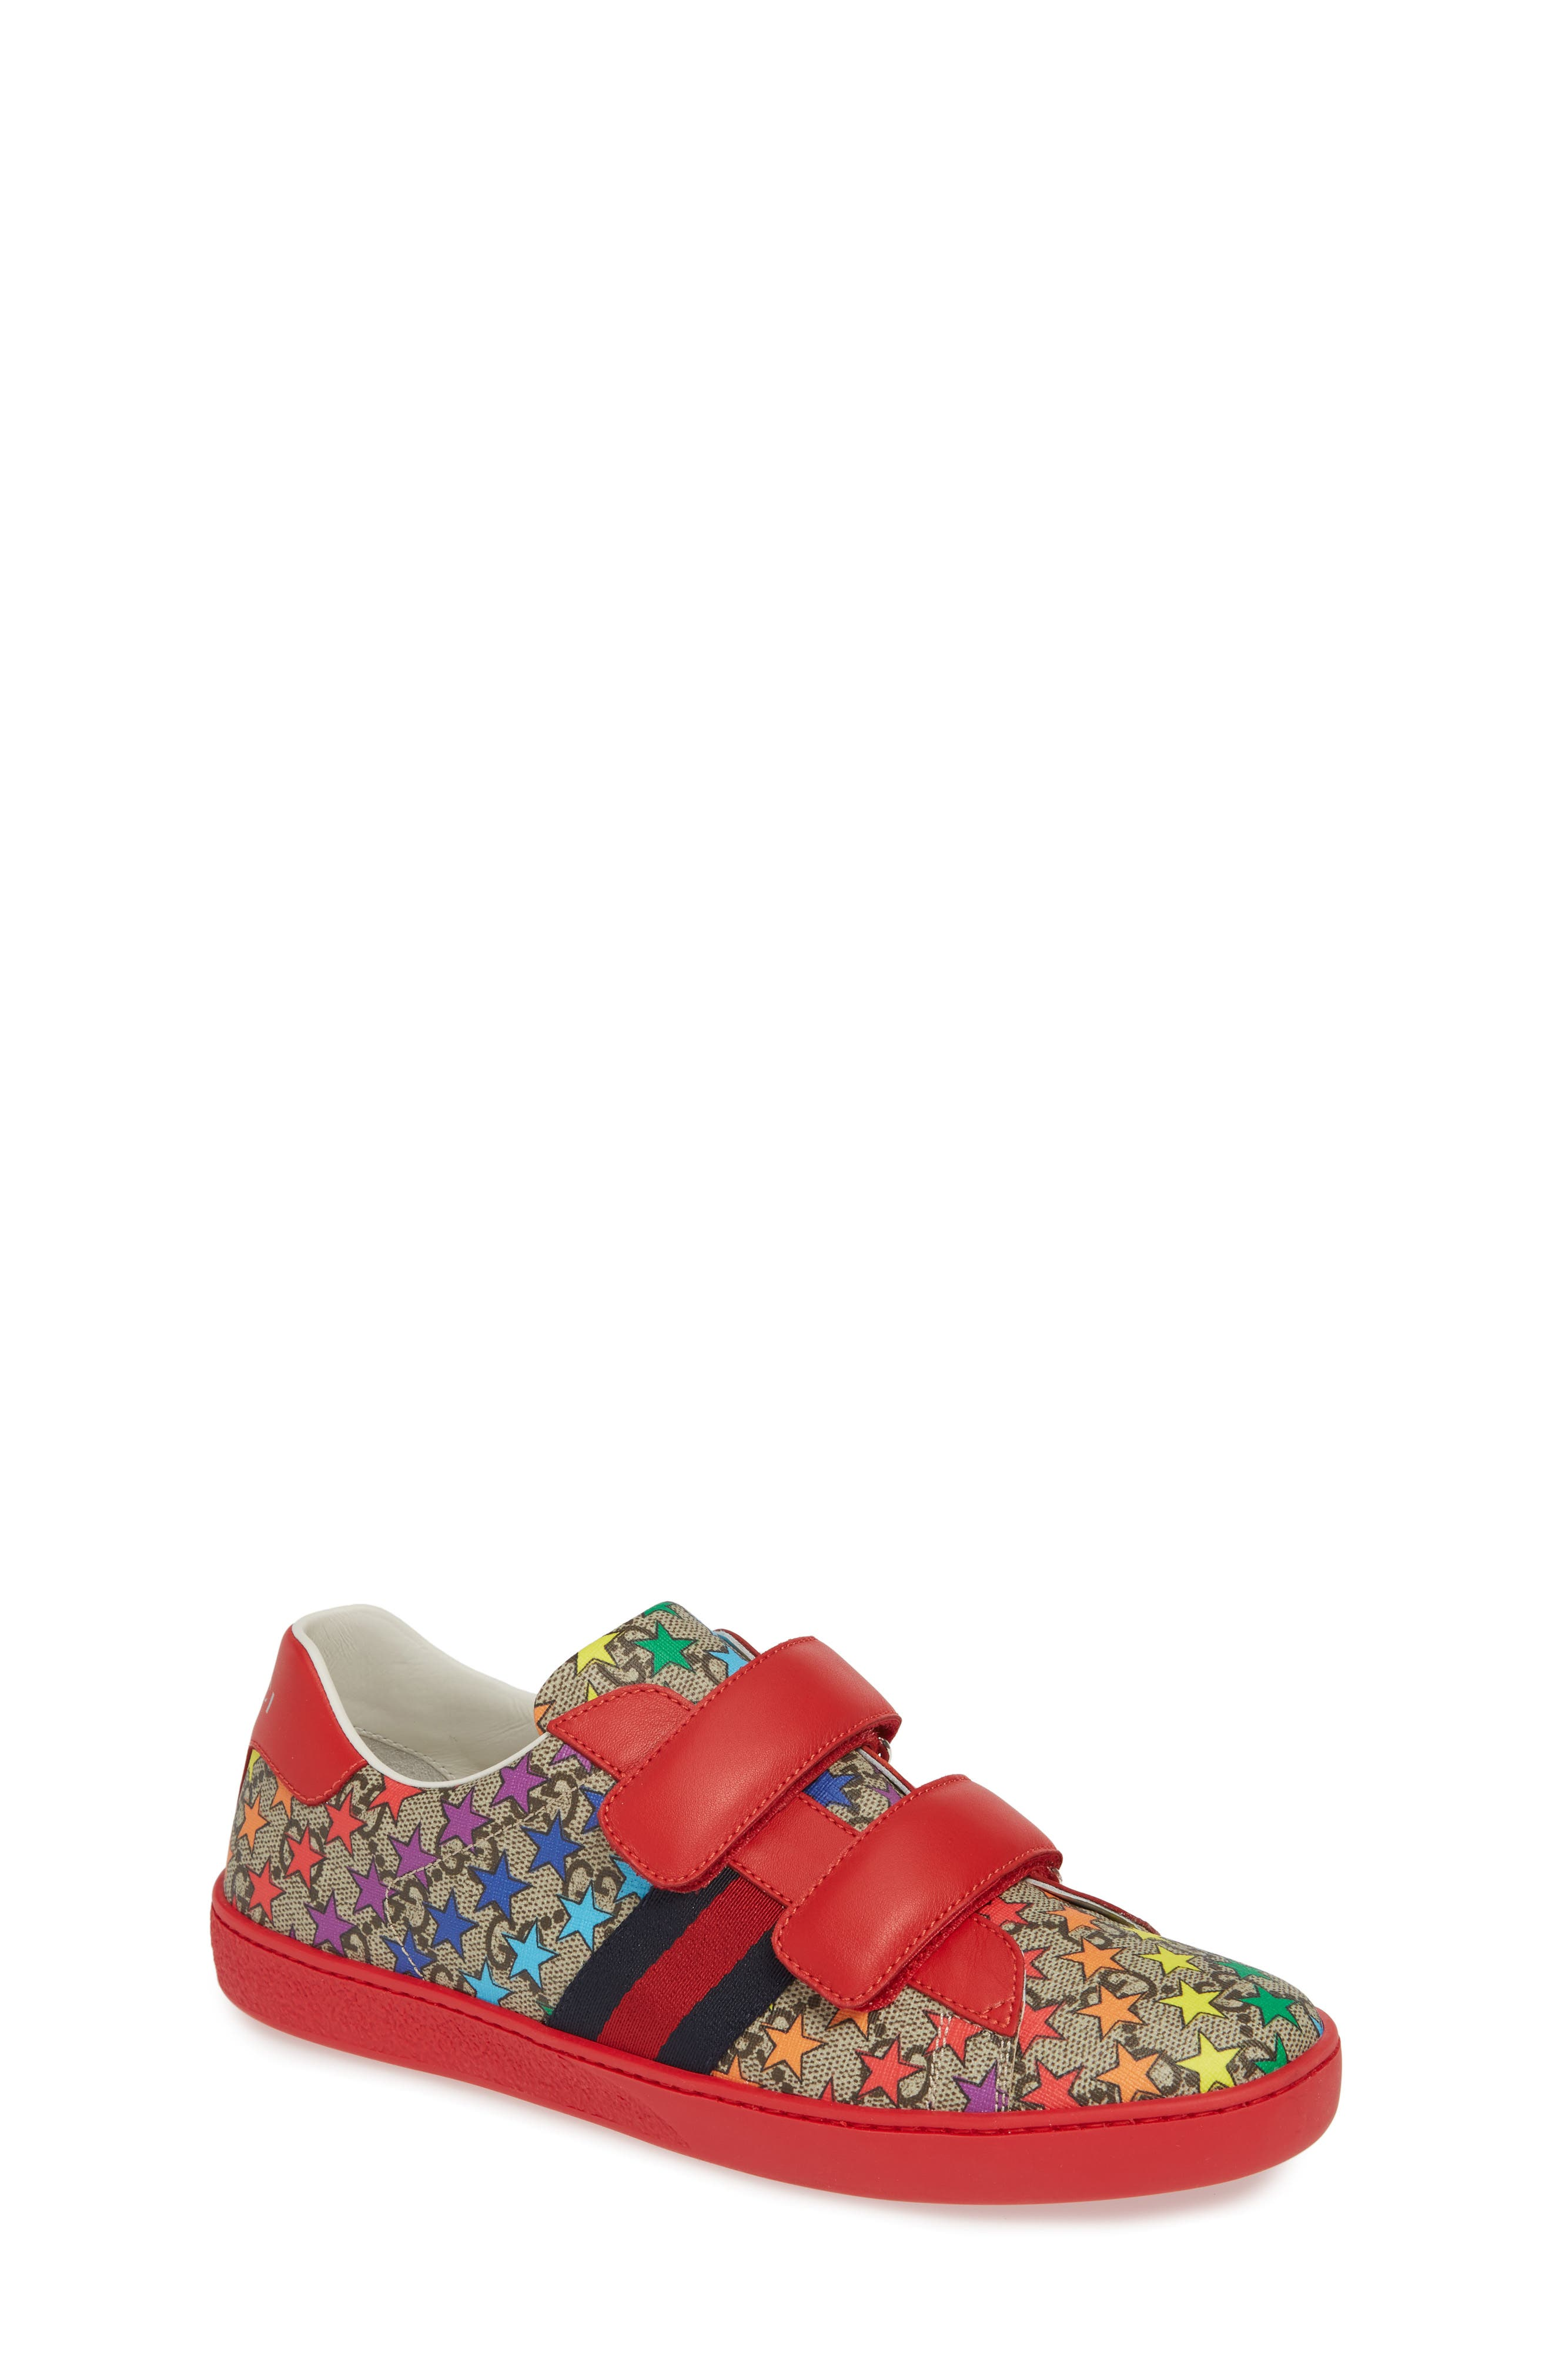 Kids Gucci New Ace Sneaker Size 5US  37EU  Red